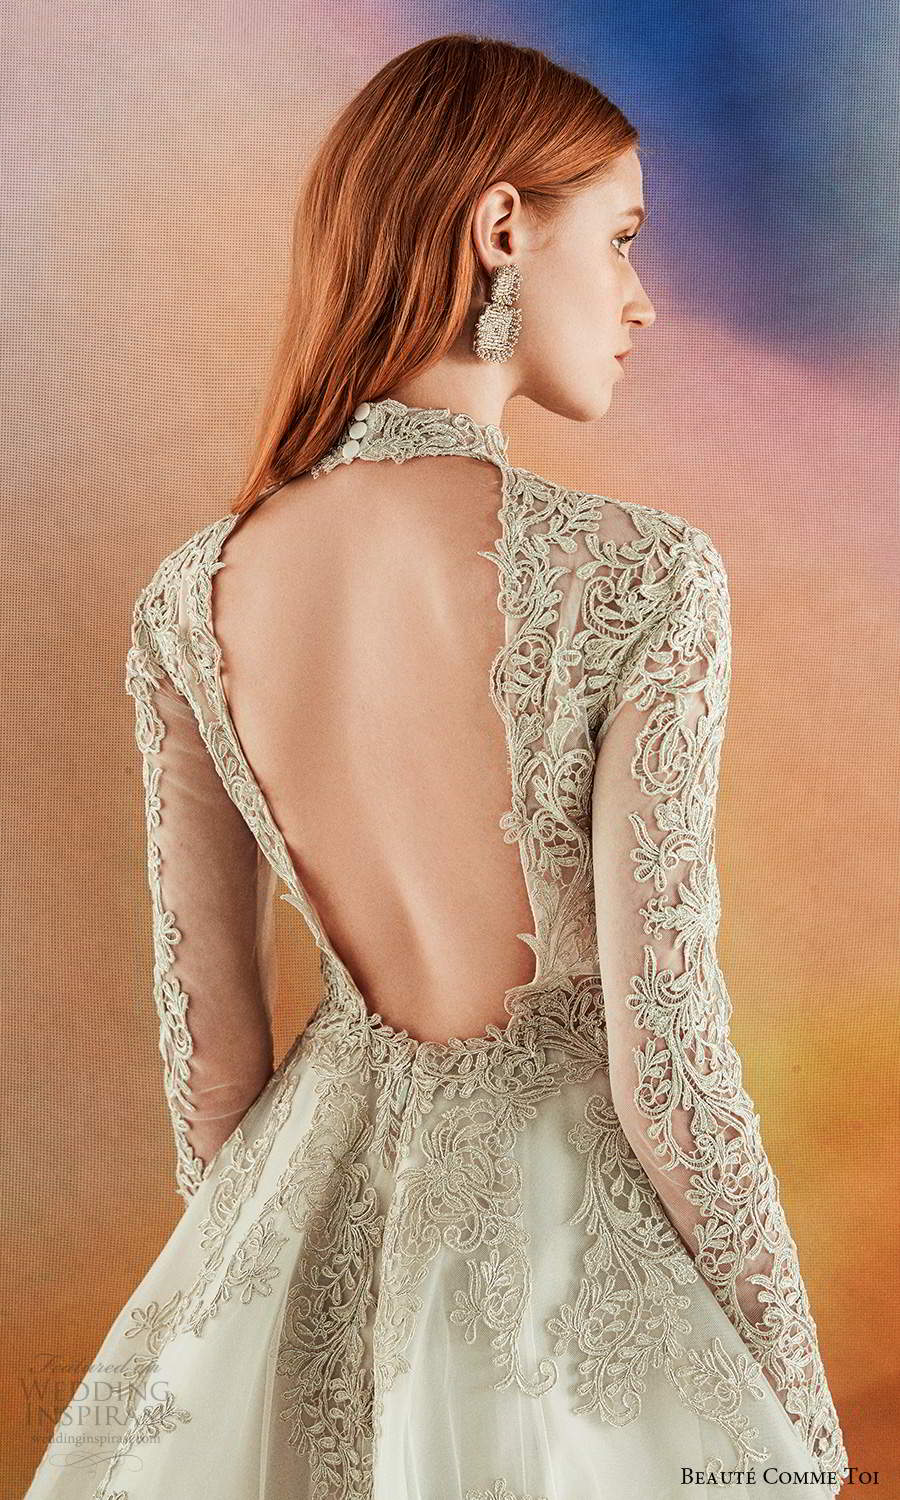 beaute comme toi fall 2021 bridal long sleeves high neckline fully embellished a line ball gown wedding dress chapel train gold keyhole back (2) zbv